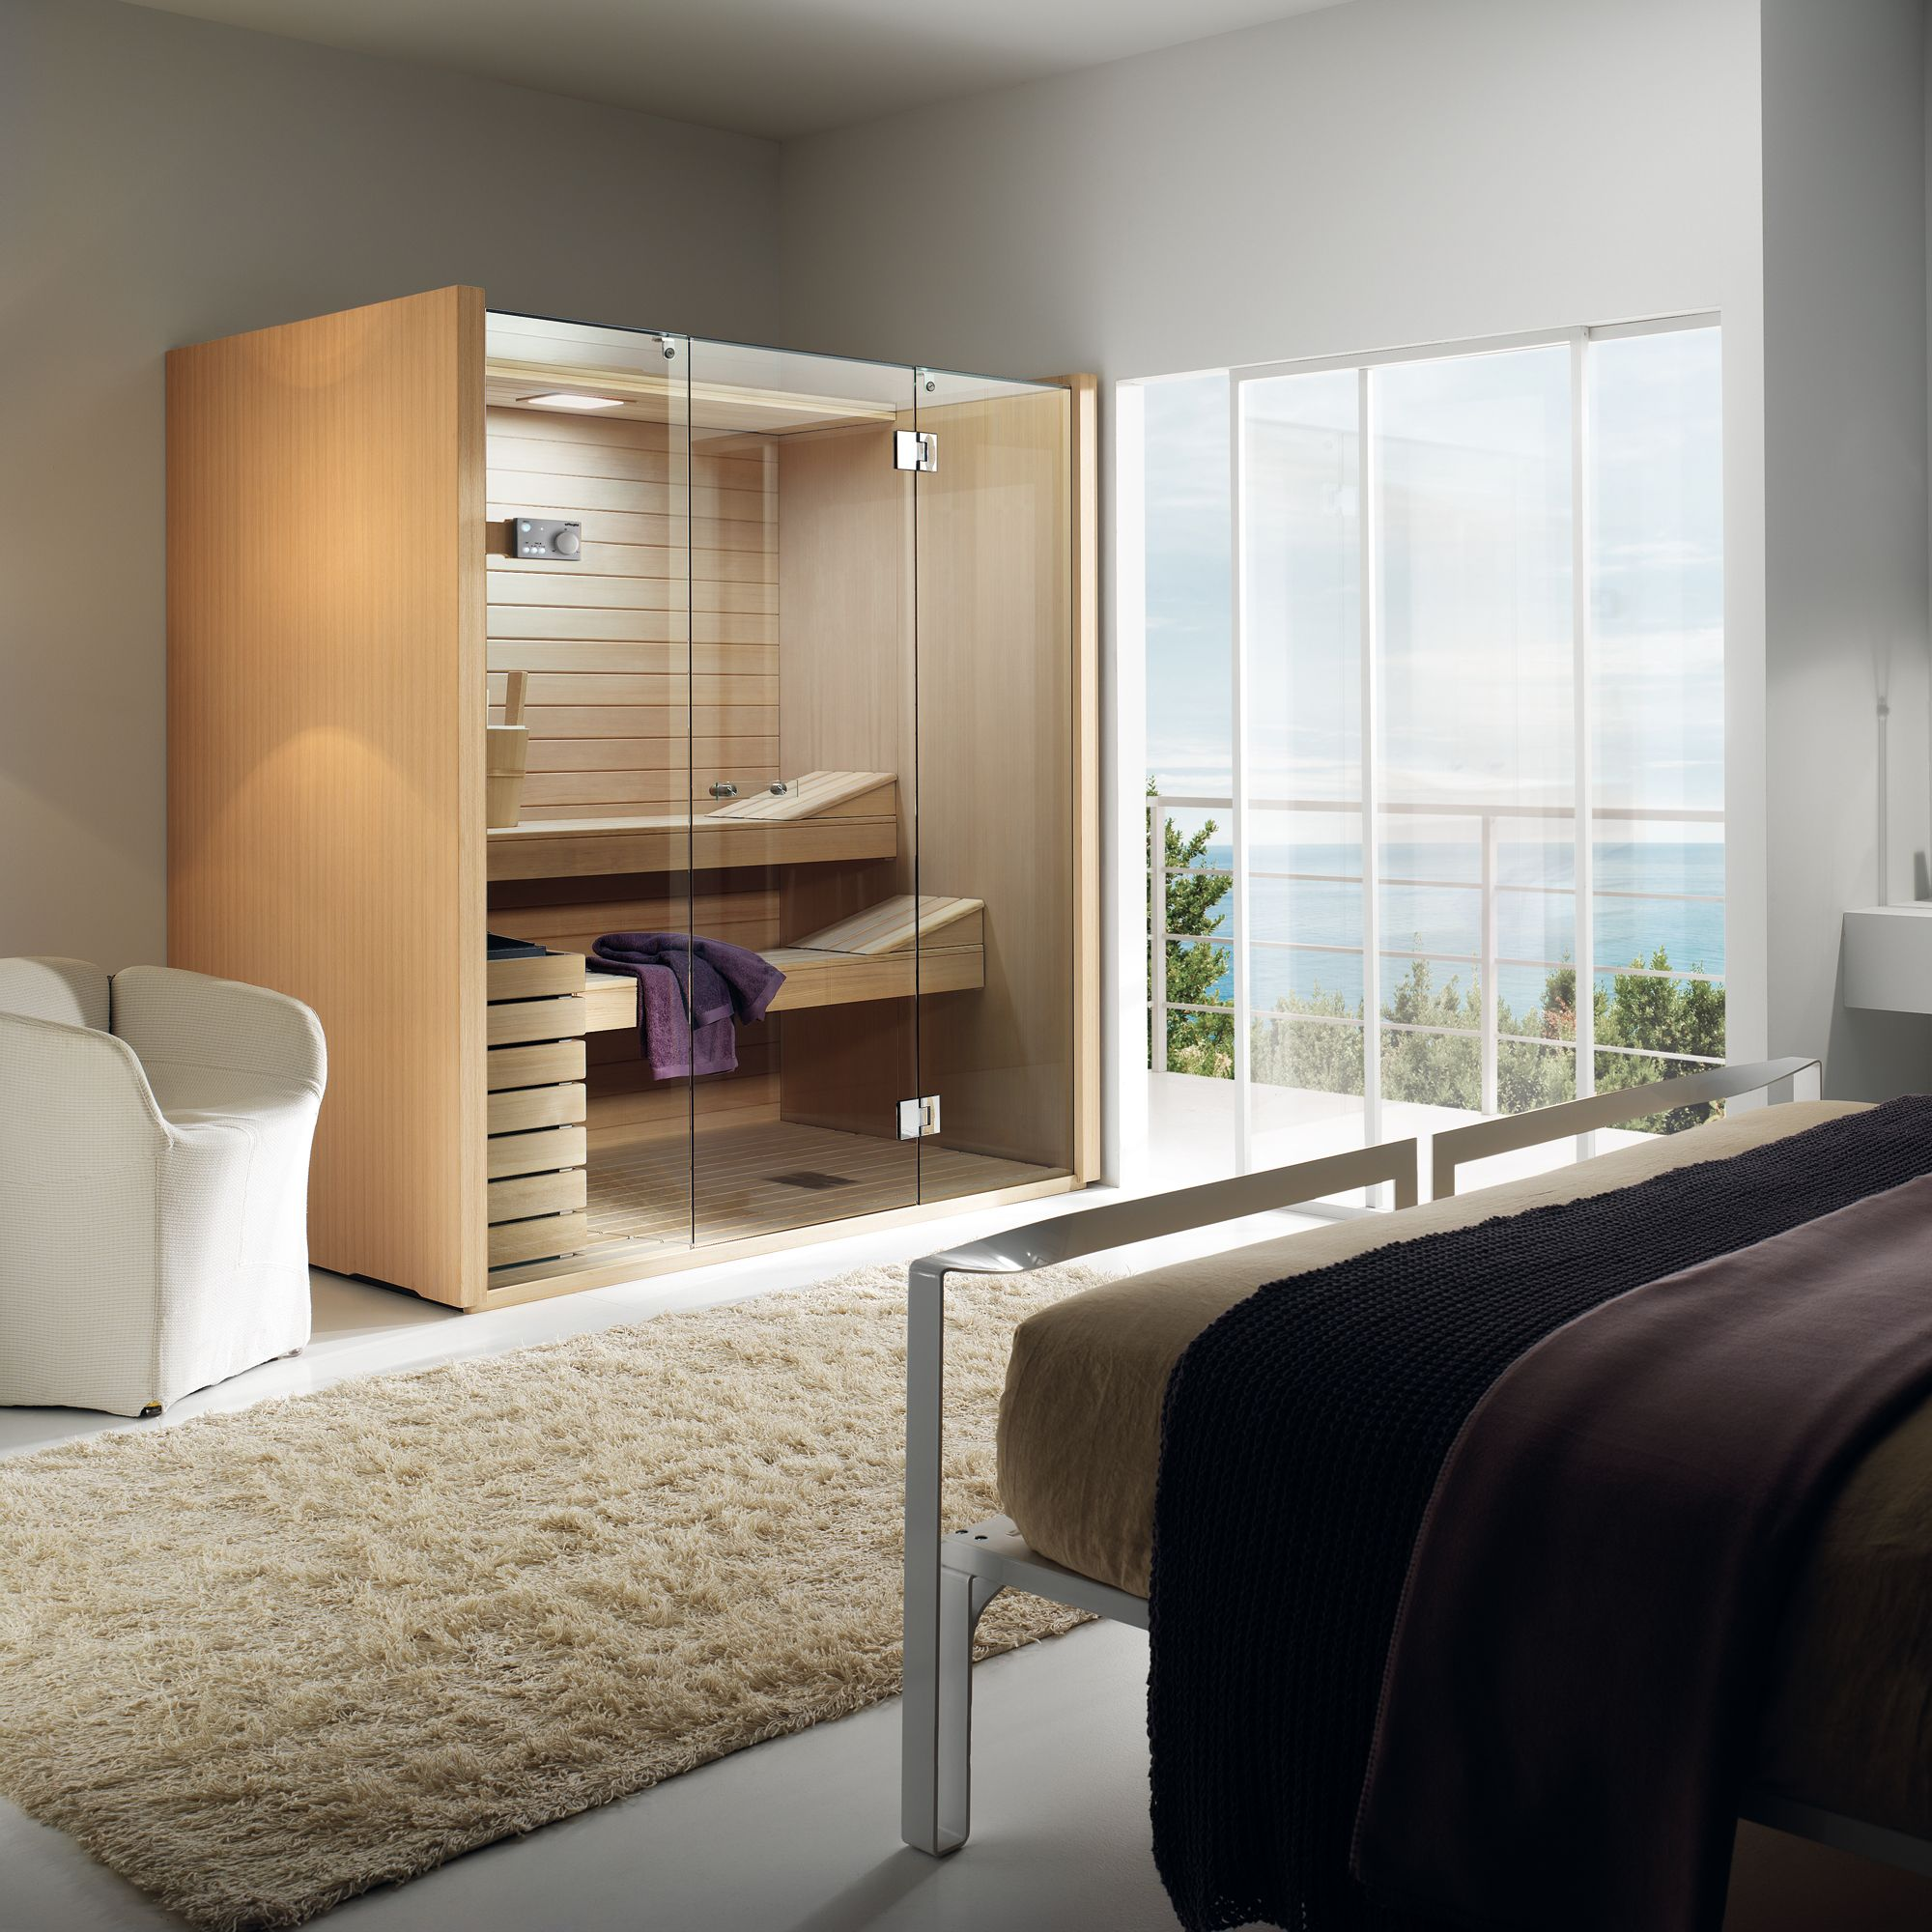 minisauna im schlafzimmer mini sauna in der wohnung. Black Bedroom Furniture Sets. Home Design Ideas